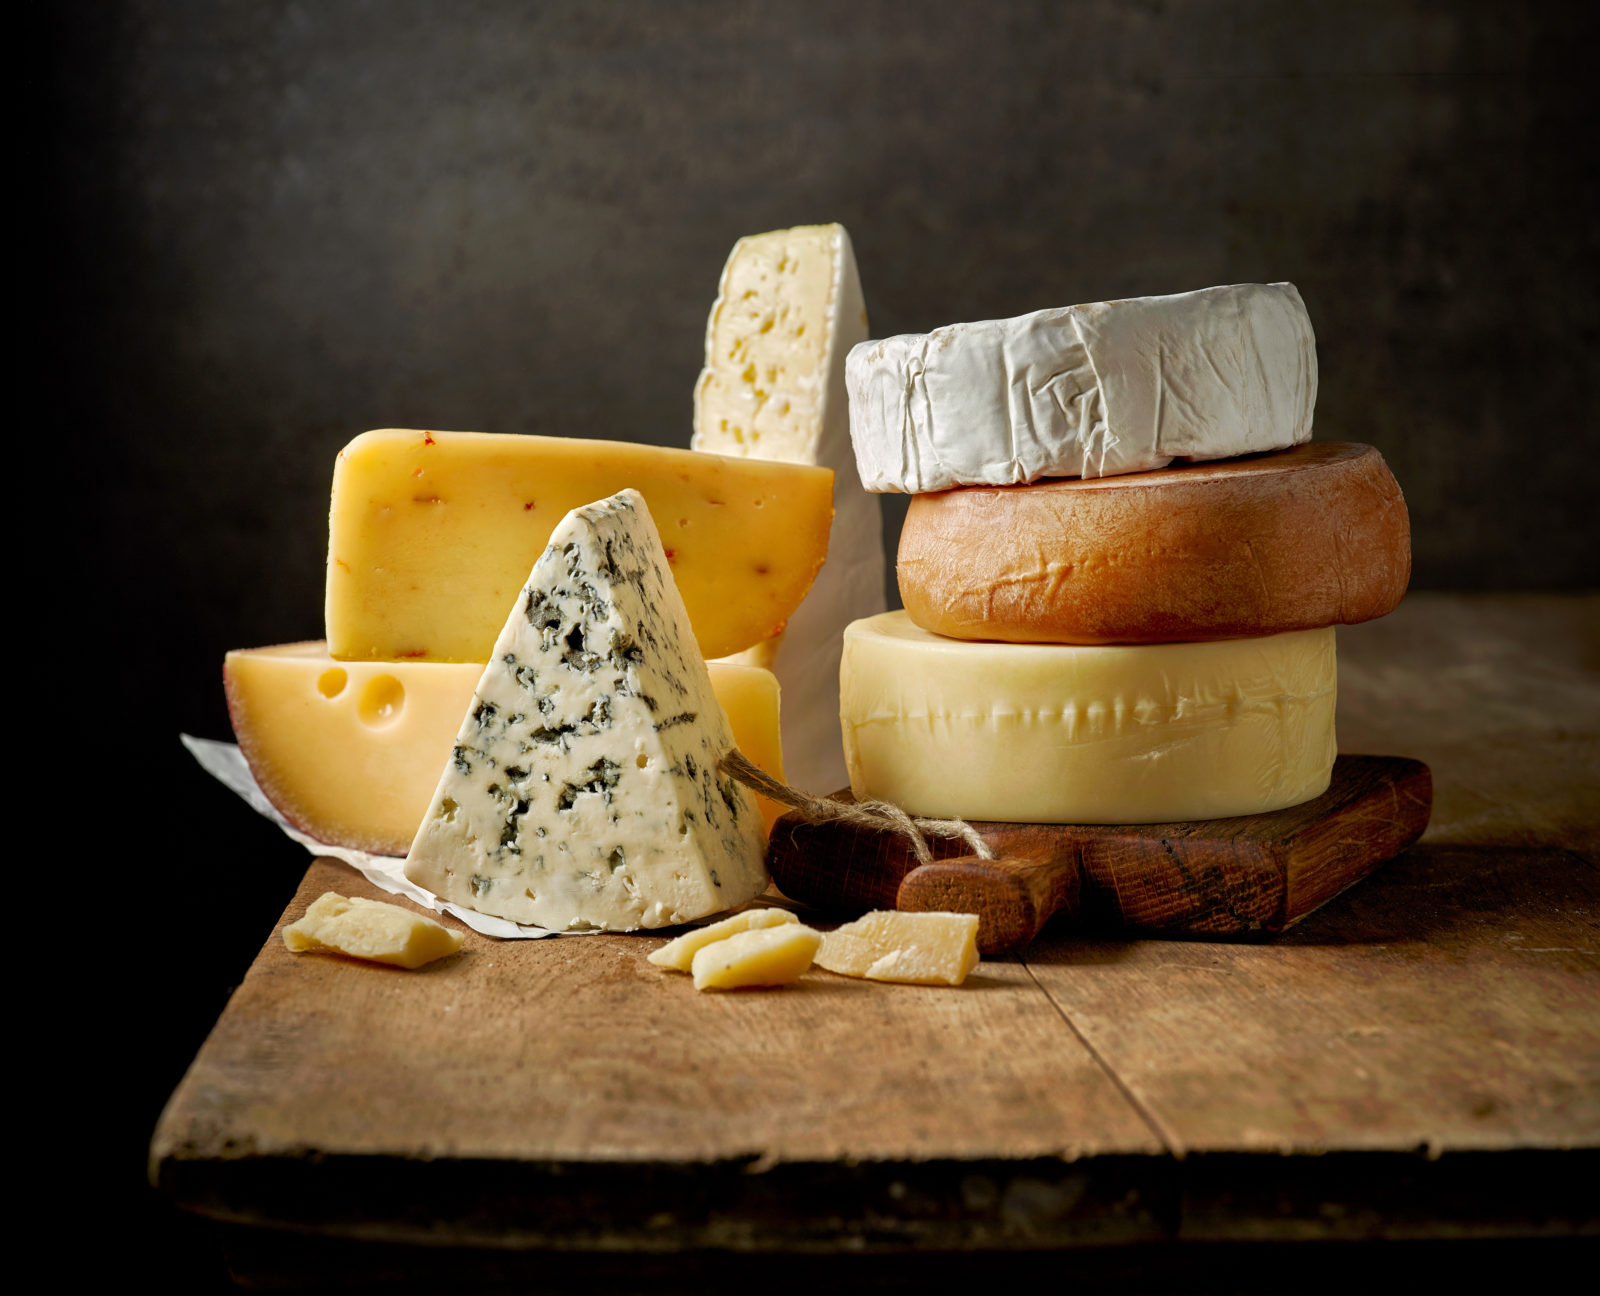 Bridge Cheese says food exports are set to grow post pandemic